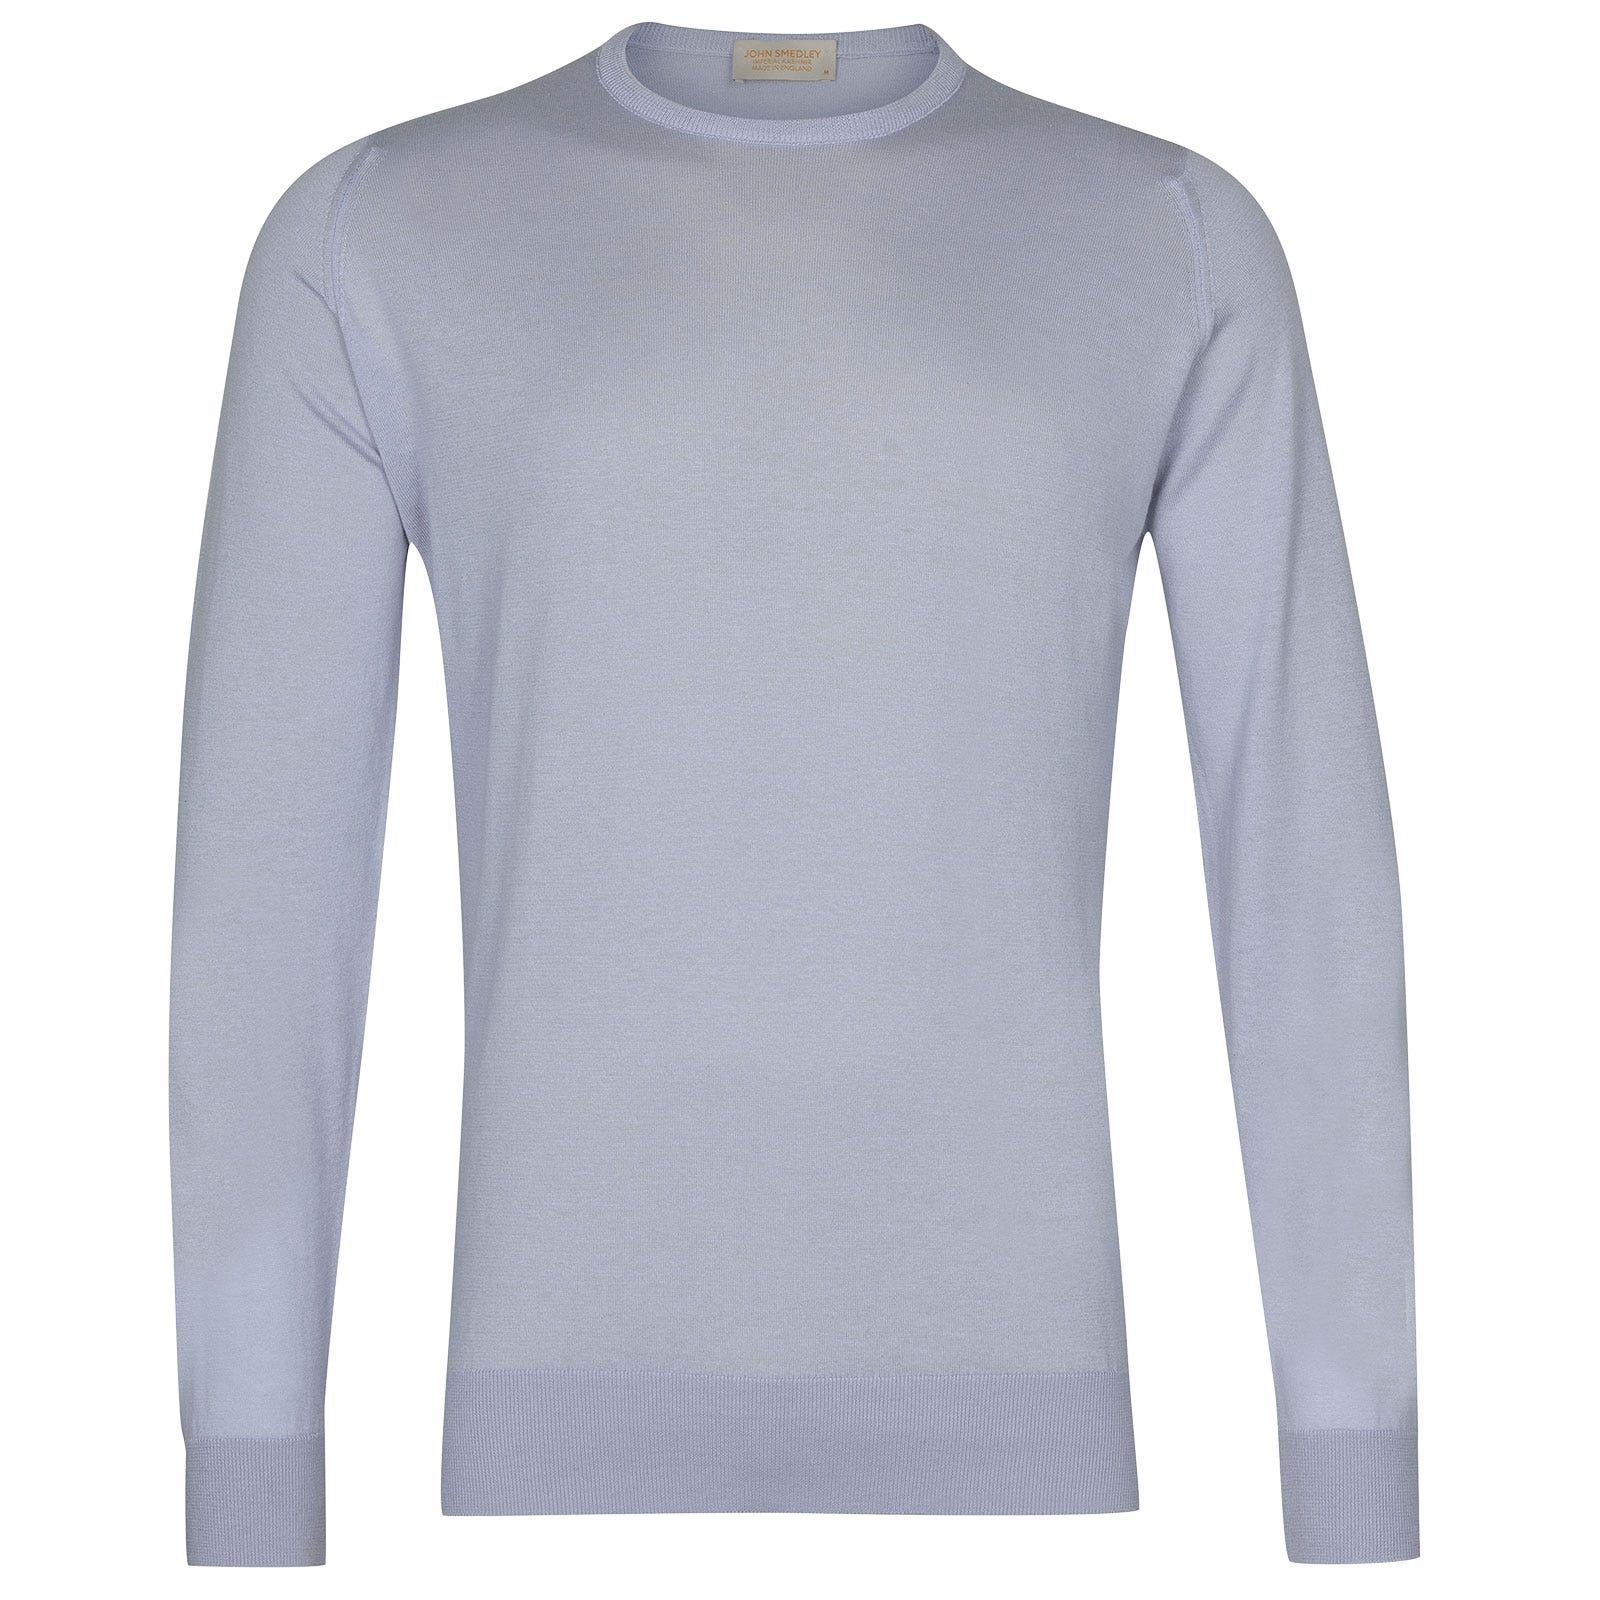 John Smedley Theon in Blue Mist Pullover-LGE